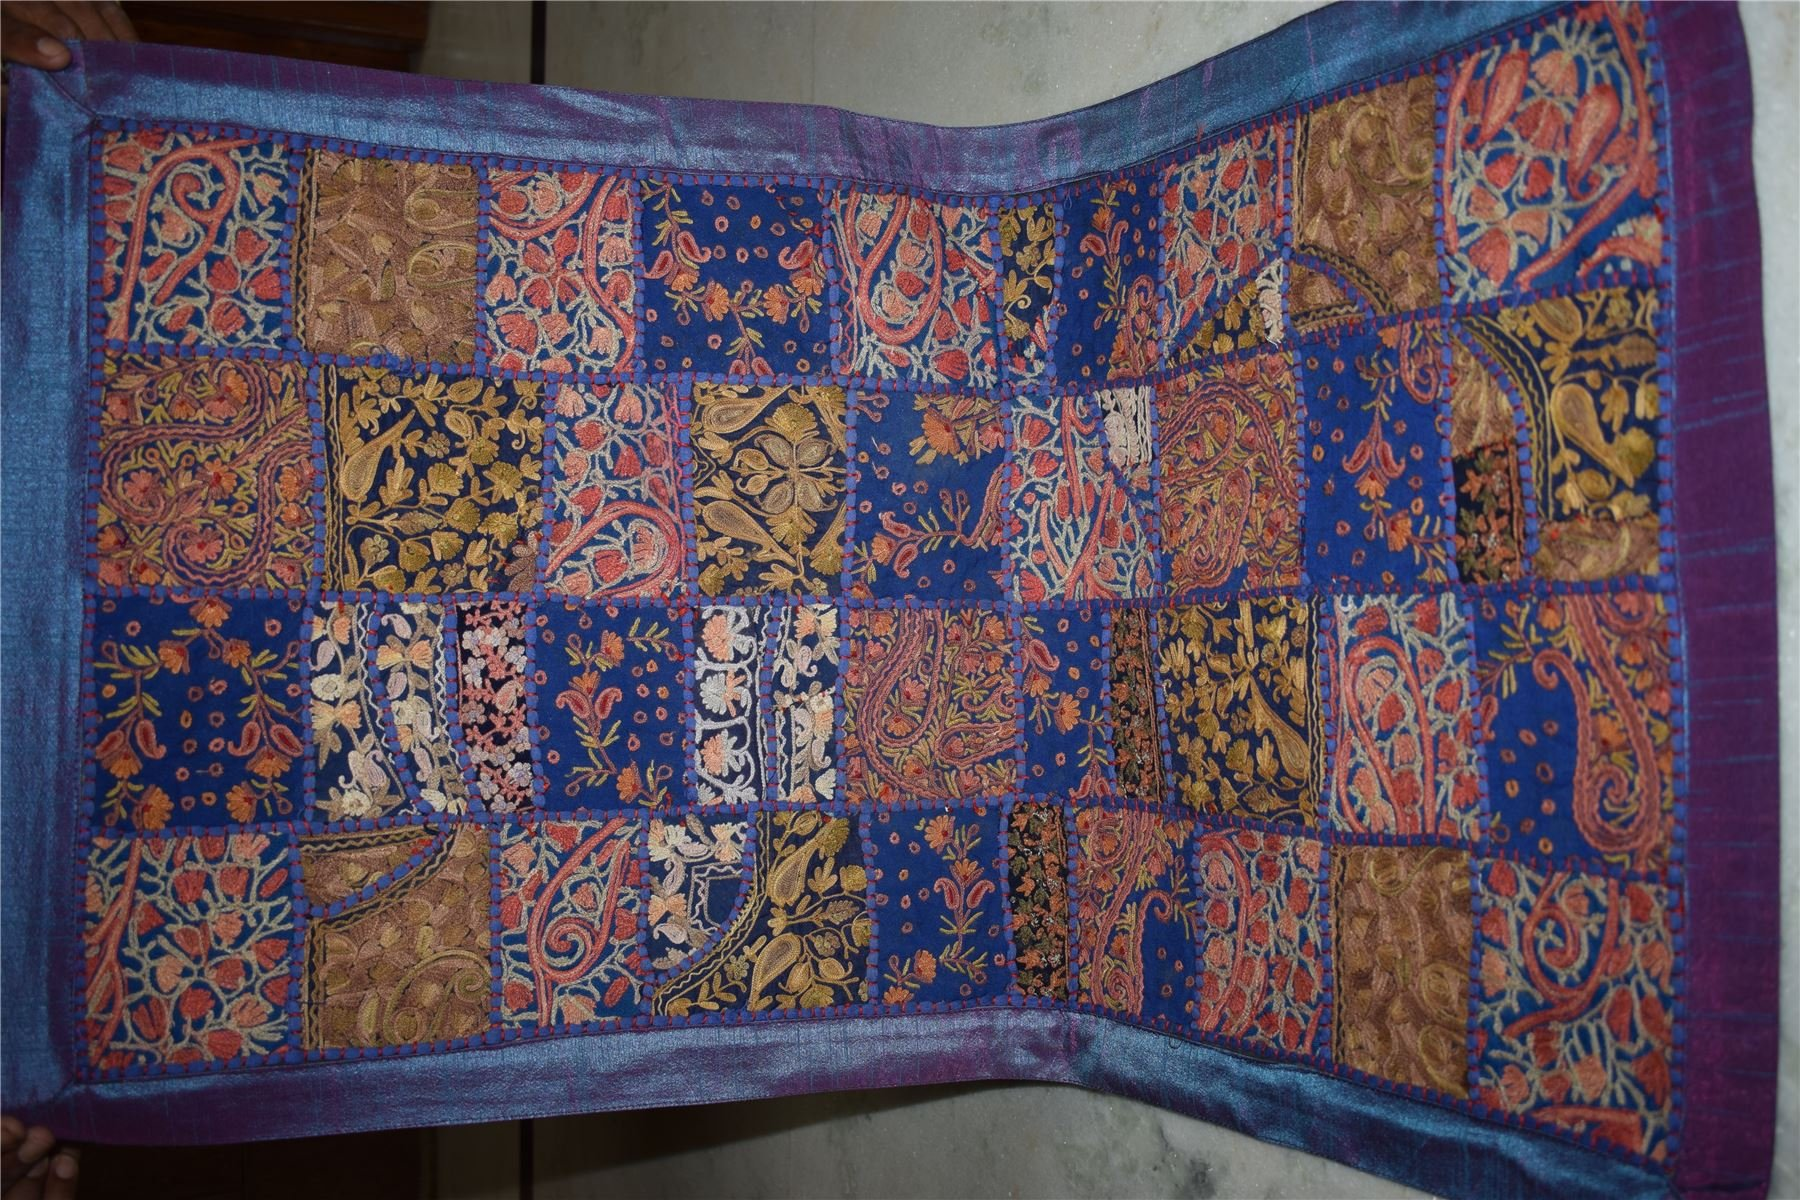 INDIA HANDMADE PATCHWORK WALL HANGING EMBROIDERED VINTAGE TAPESTRY 121